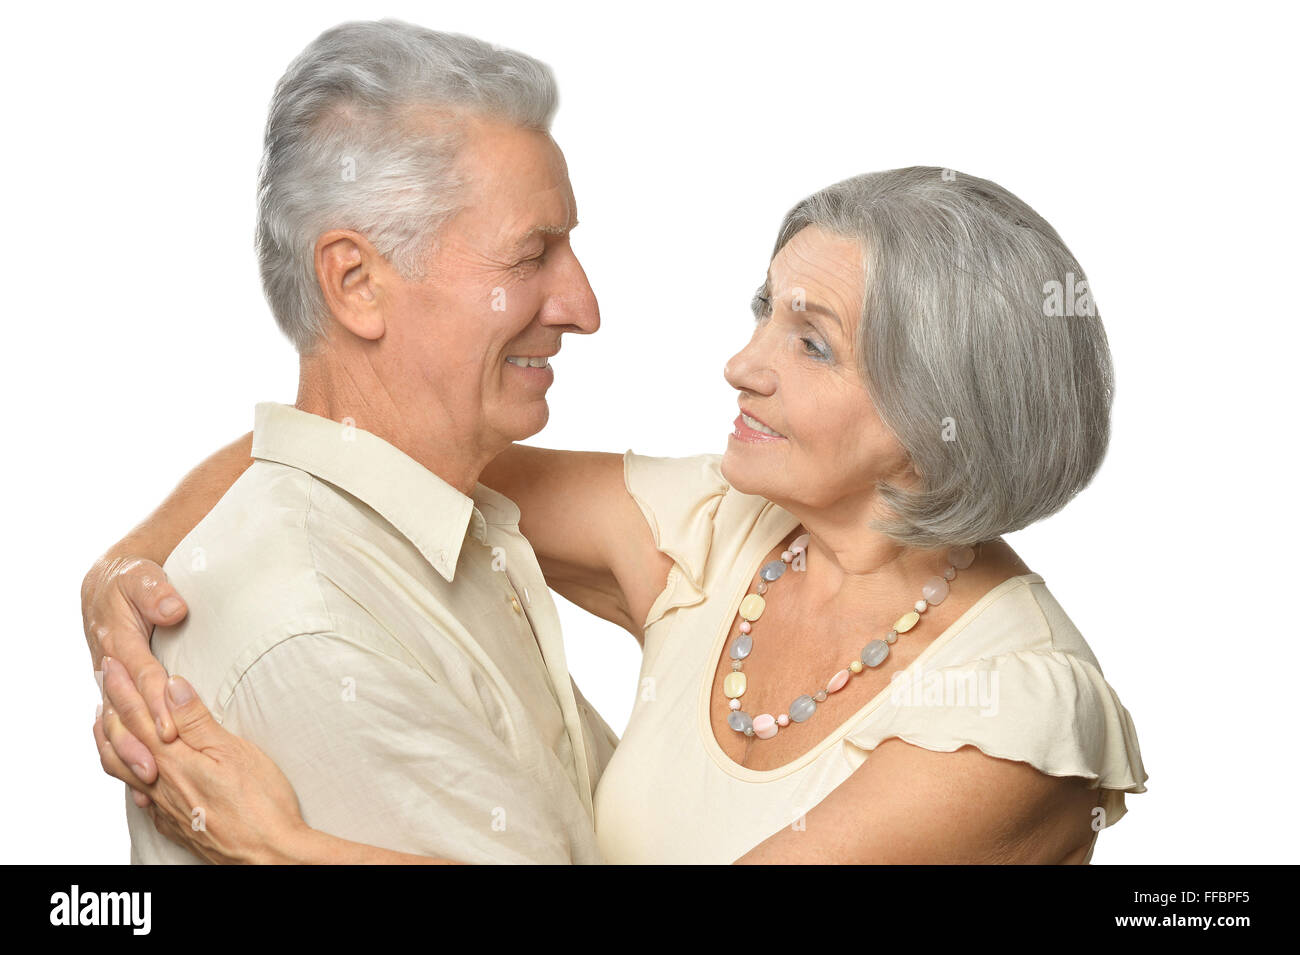 Happy smiling old couple - Stock Image